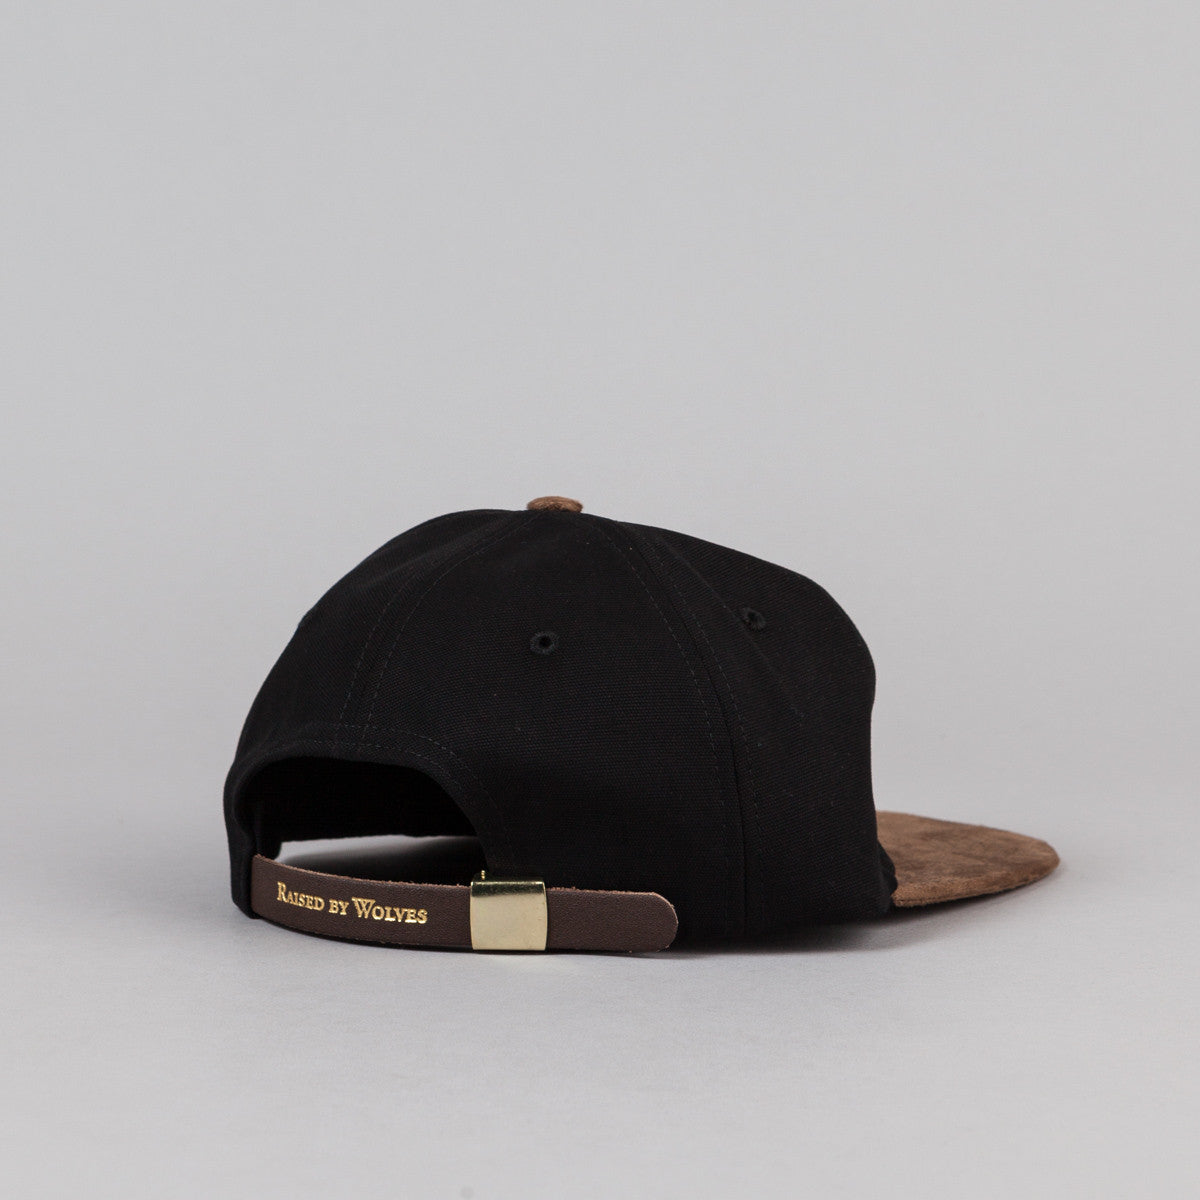 Raised By Wolves Geowulf Polo Cap - Mocha / Black